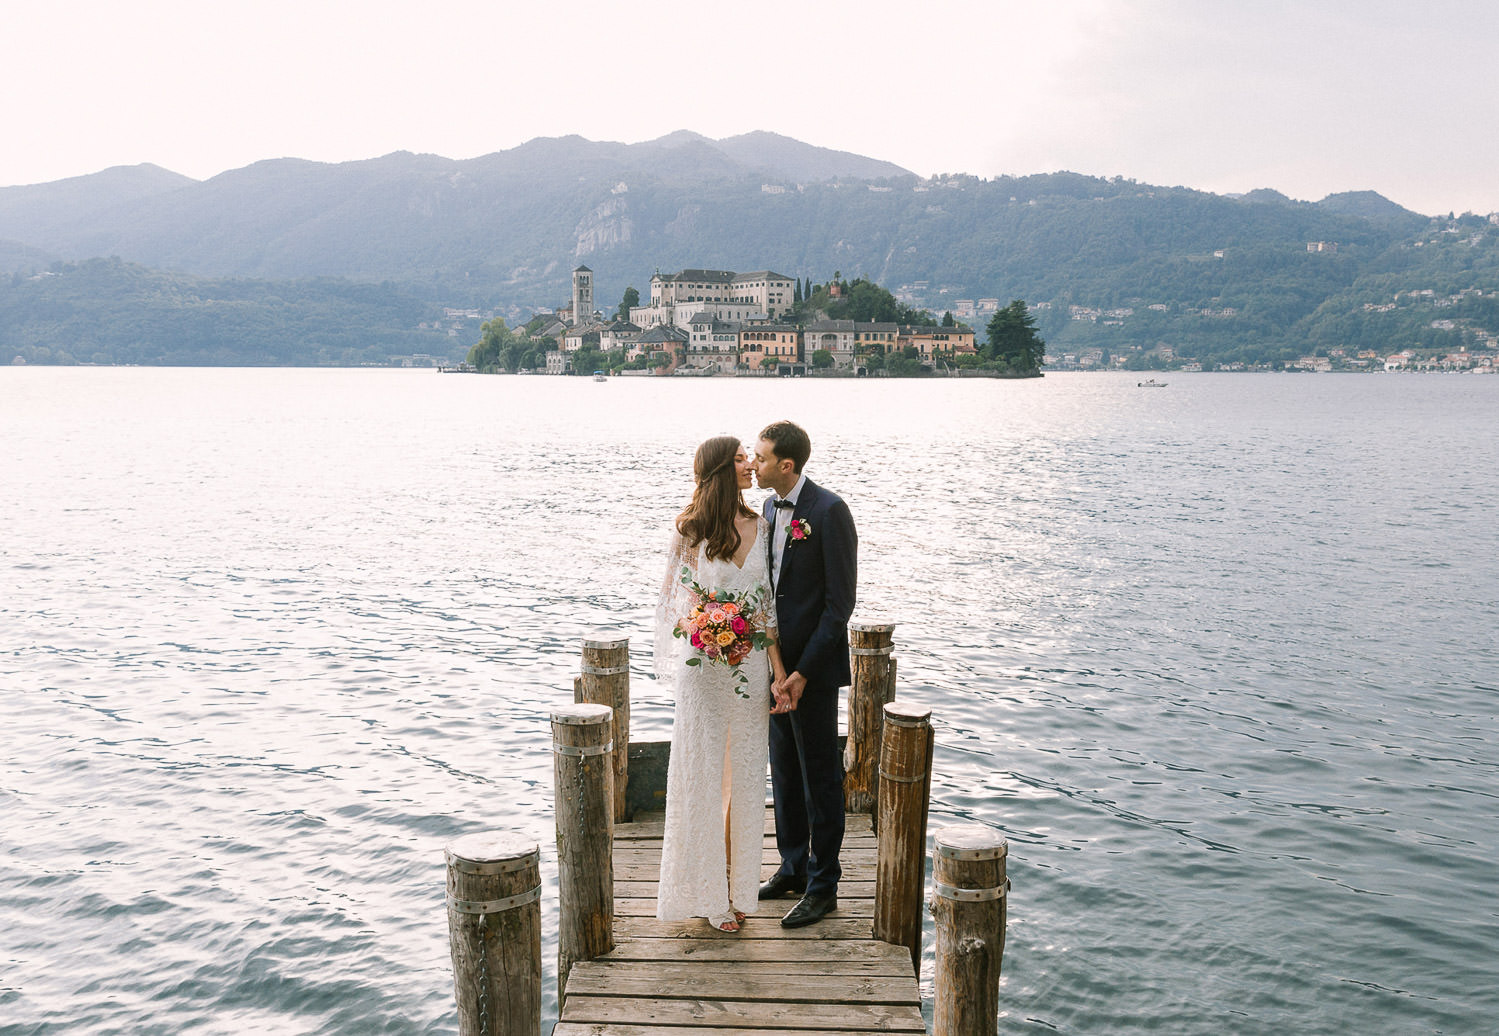 Destination wedding in Italy: intimate wedding in Orta San Giulio, Lake Orta | Photo: Camilla Anchisi - Italian wedding photographer